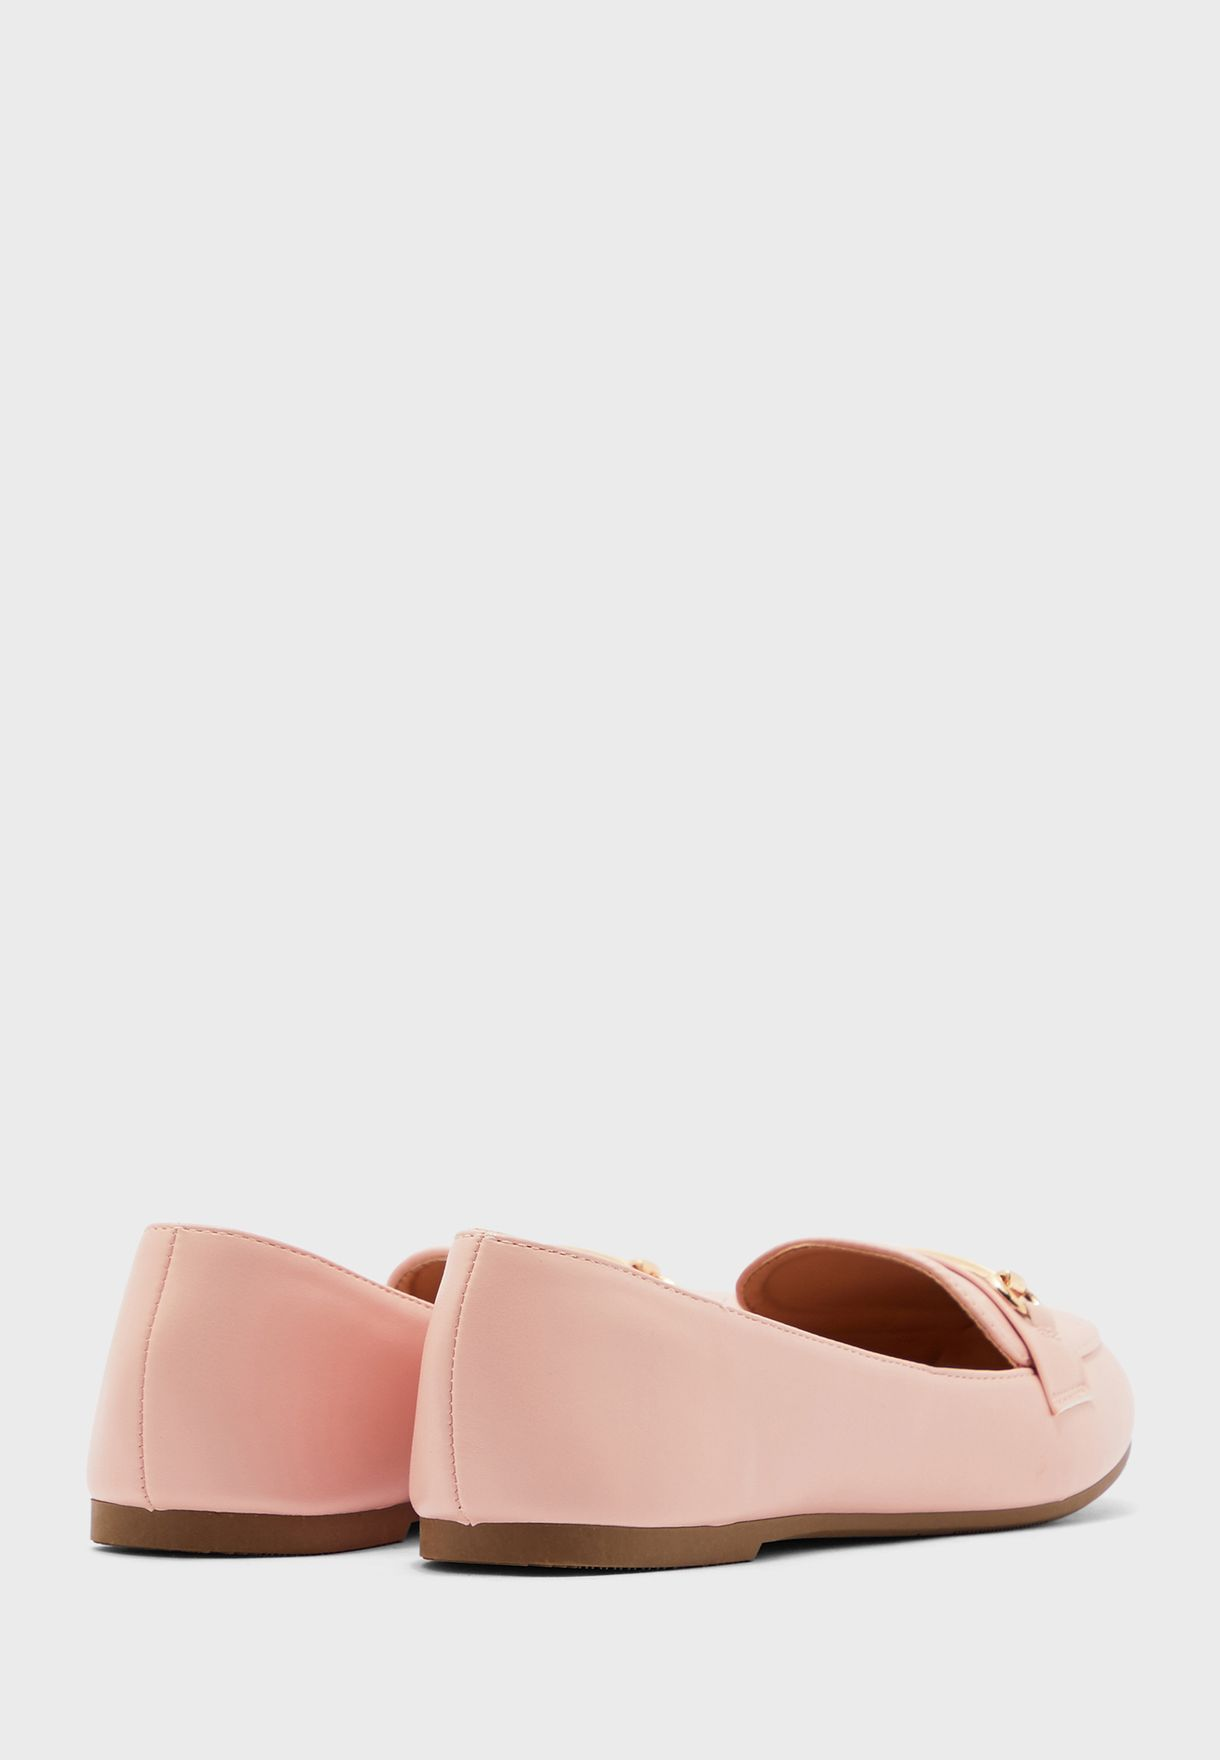 Tbar Loafer